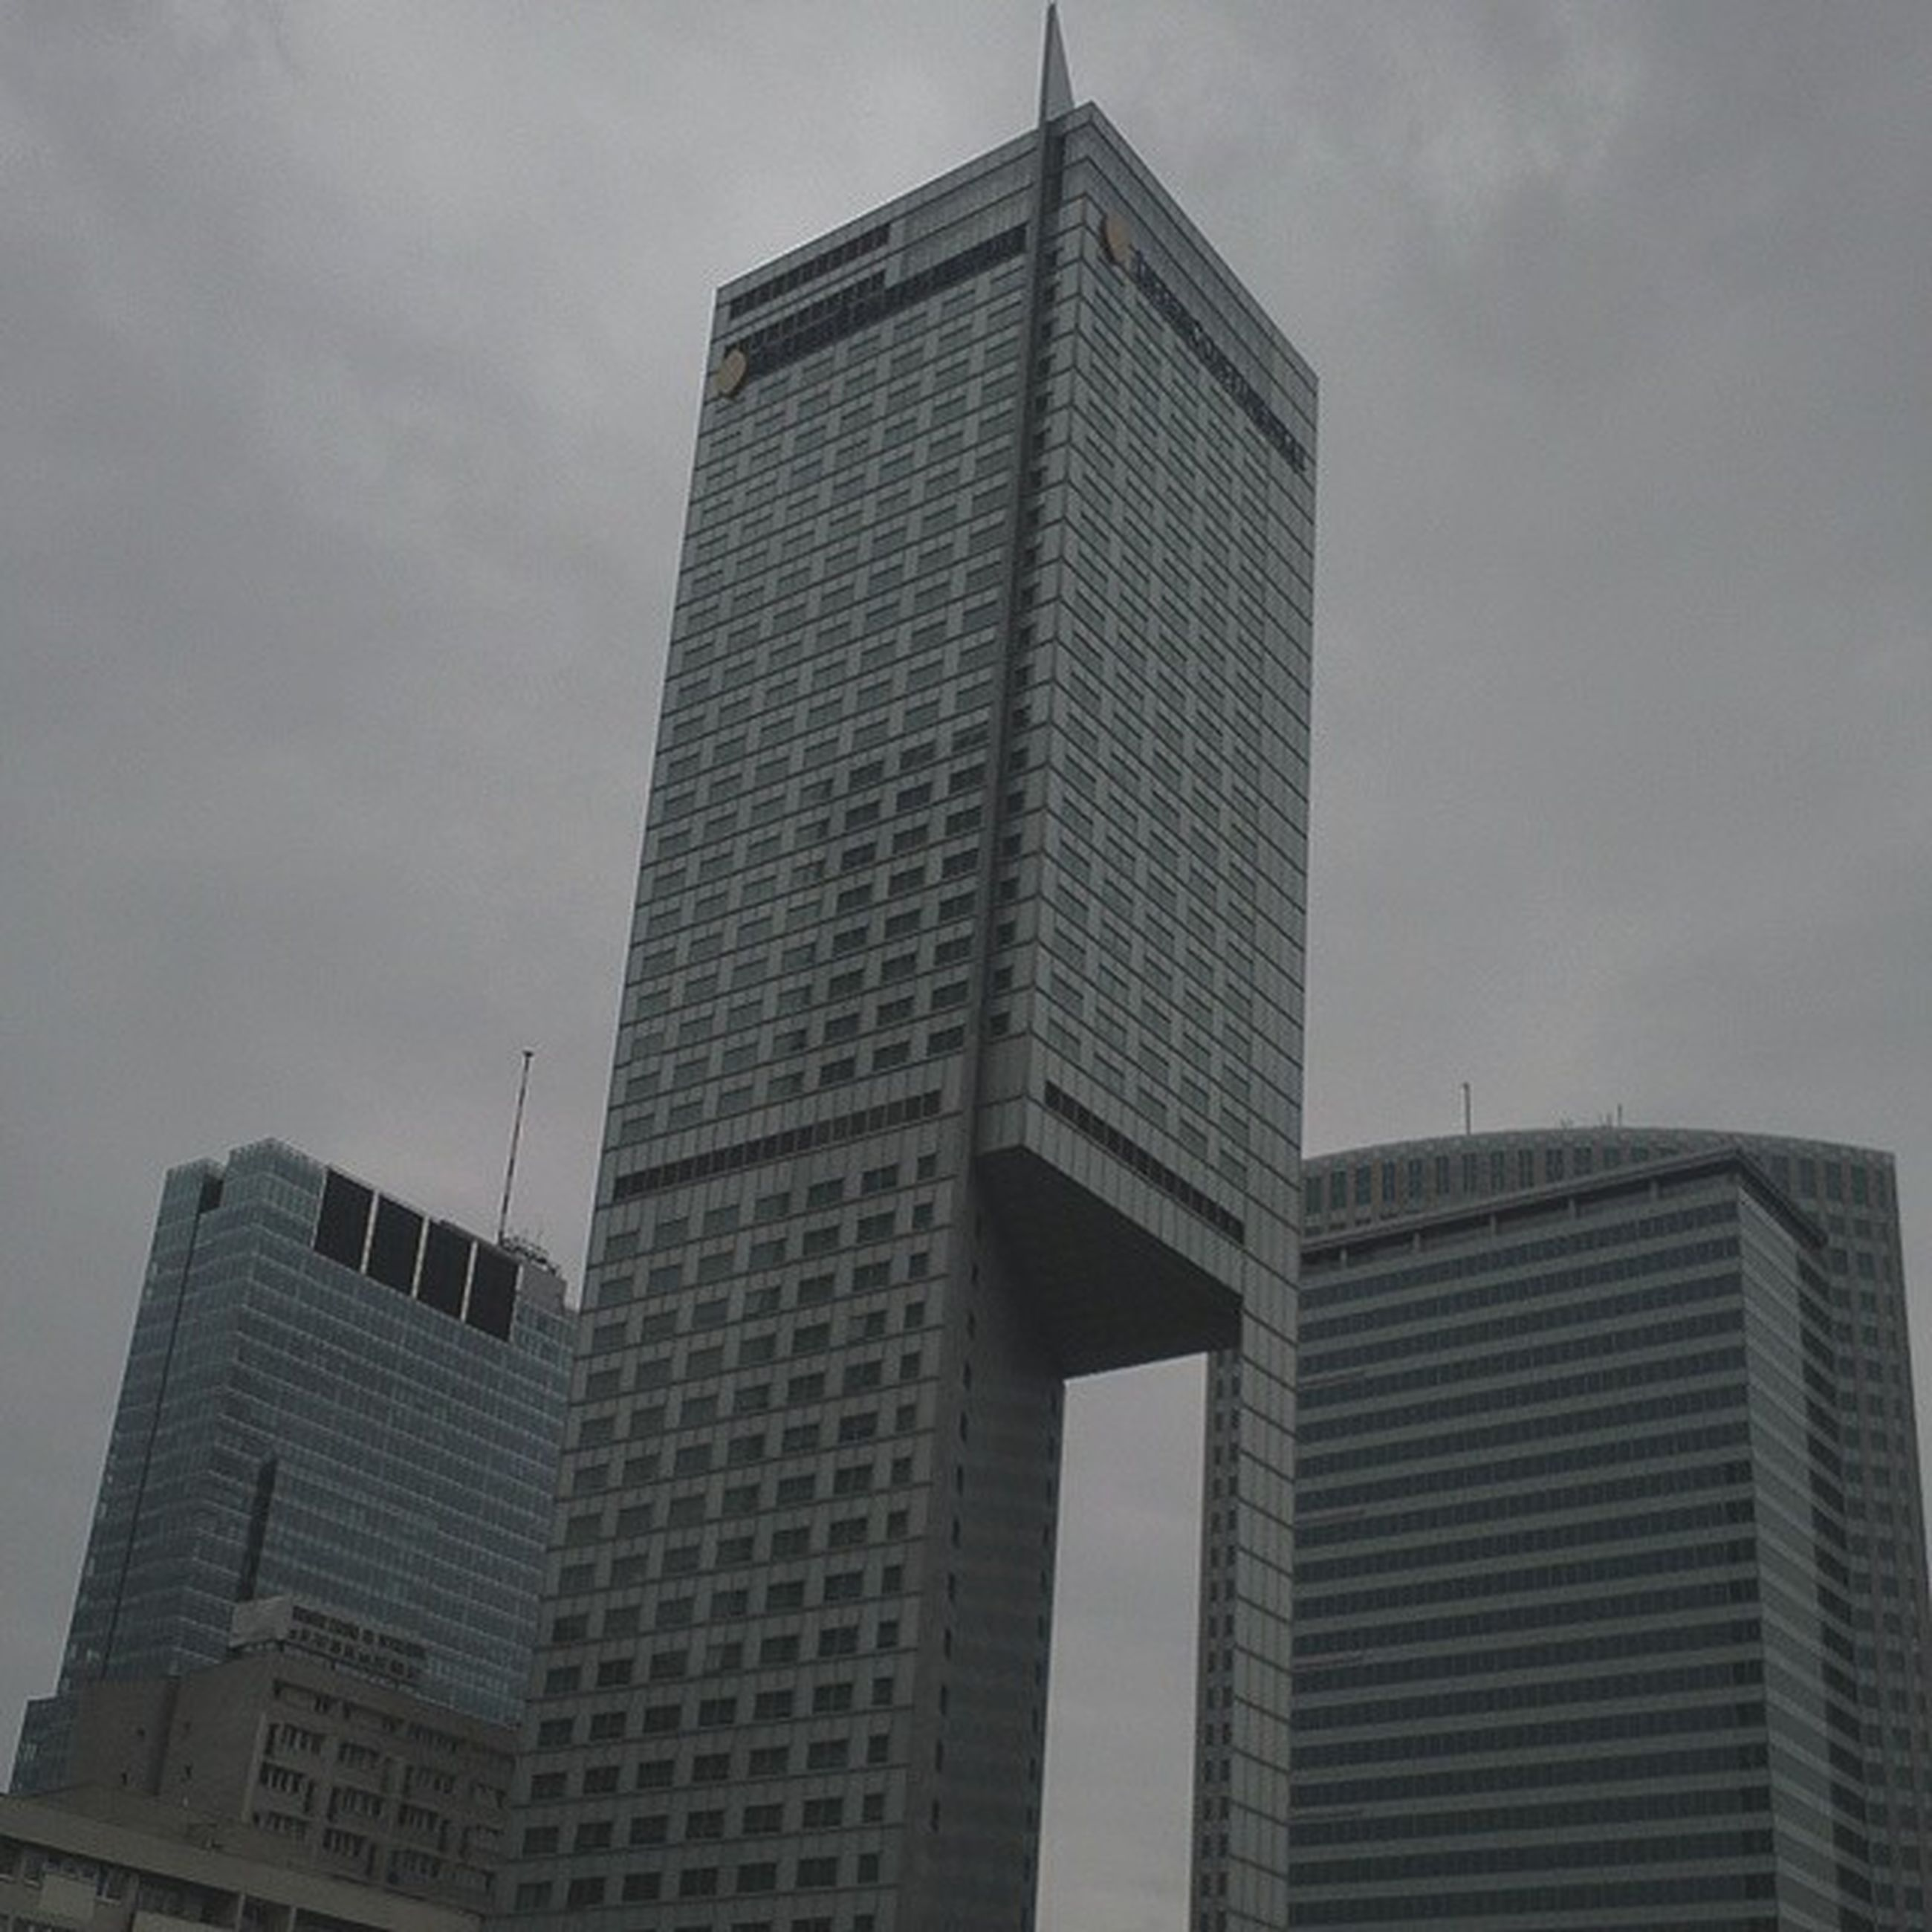 architecture, building exterior, built structure, low angle view, sky, tall - high, city, skyscraper, modern, office building, tower, cloud - sky, building, tall, cloudy, cloud, day, outdoors, no people, glass - material